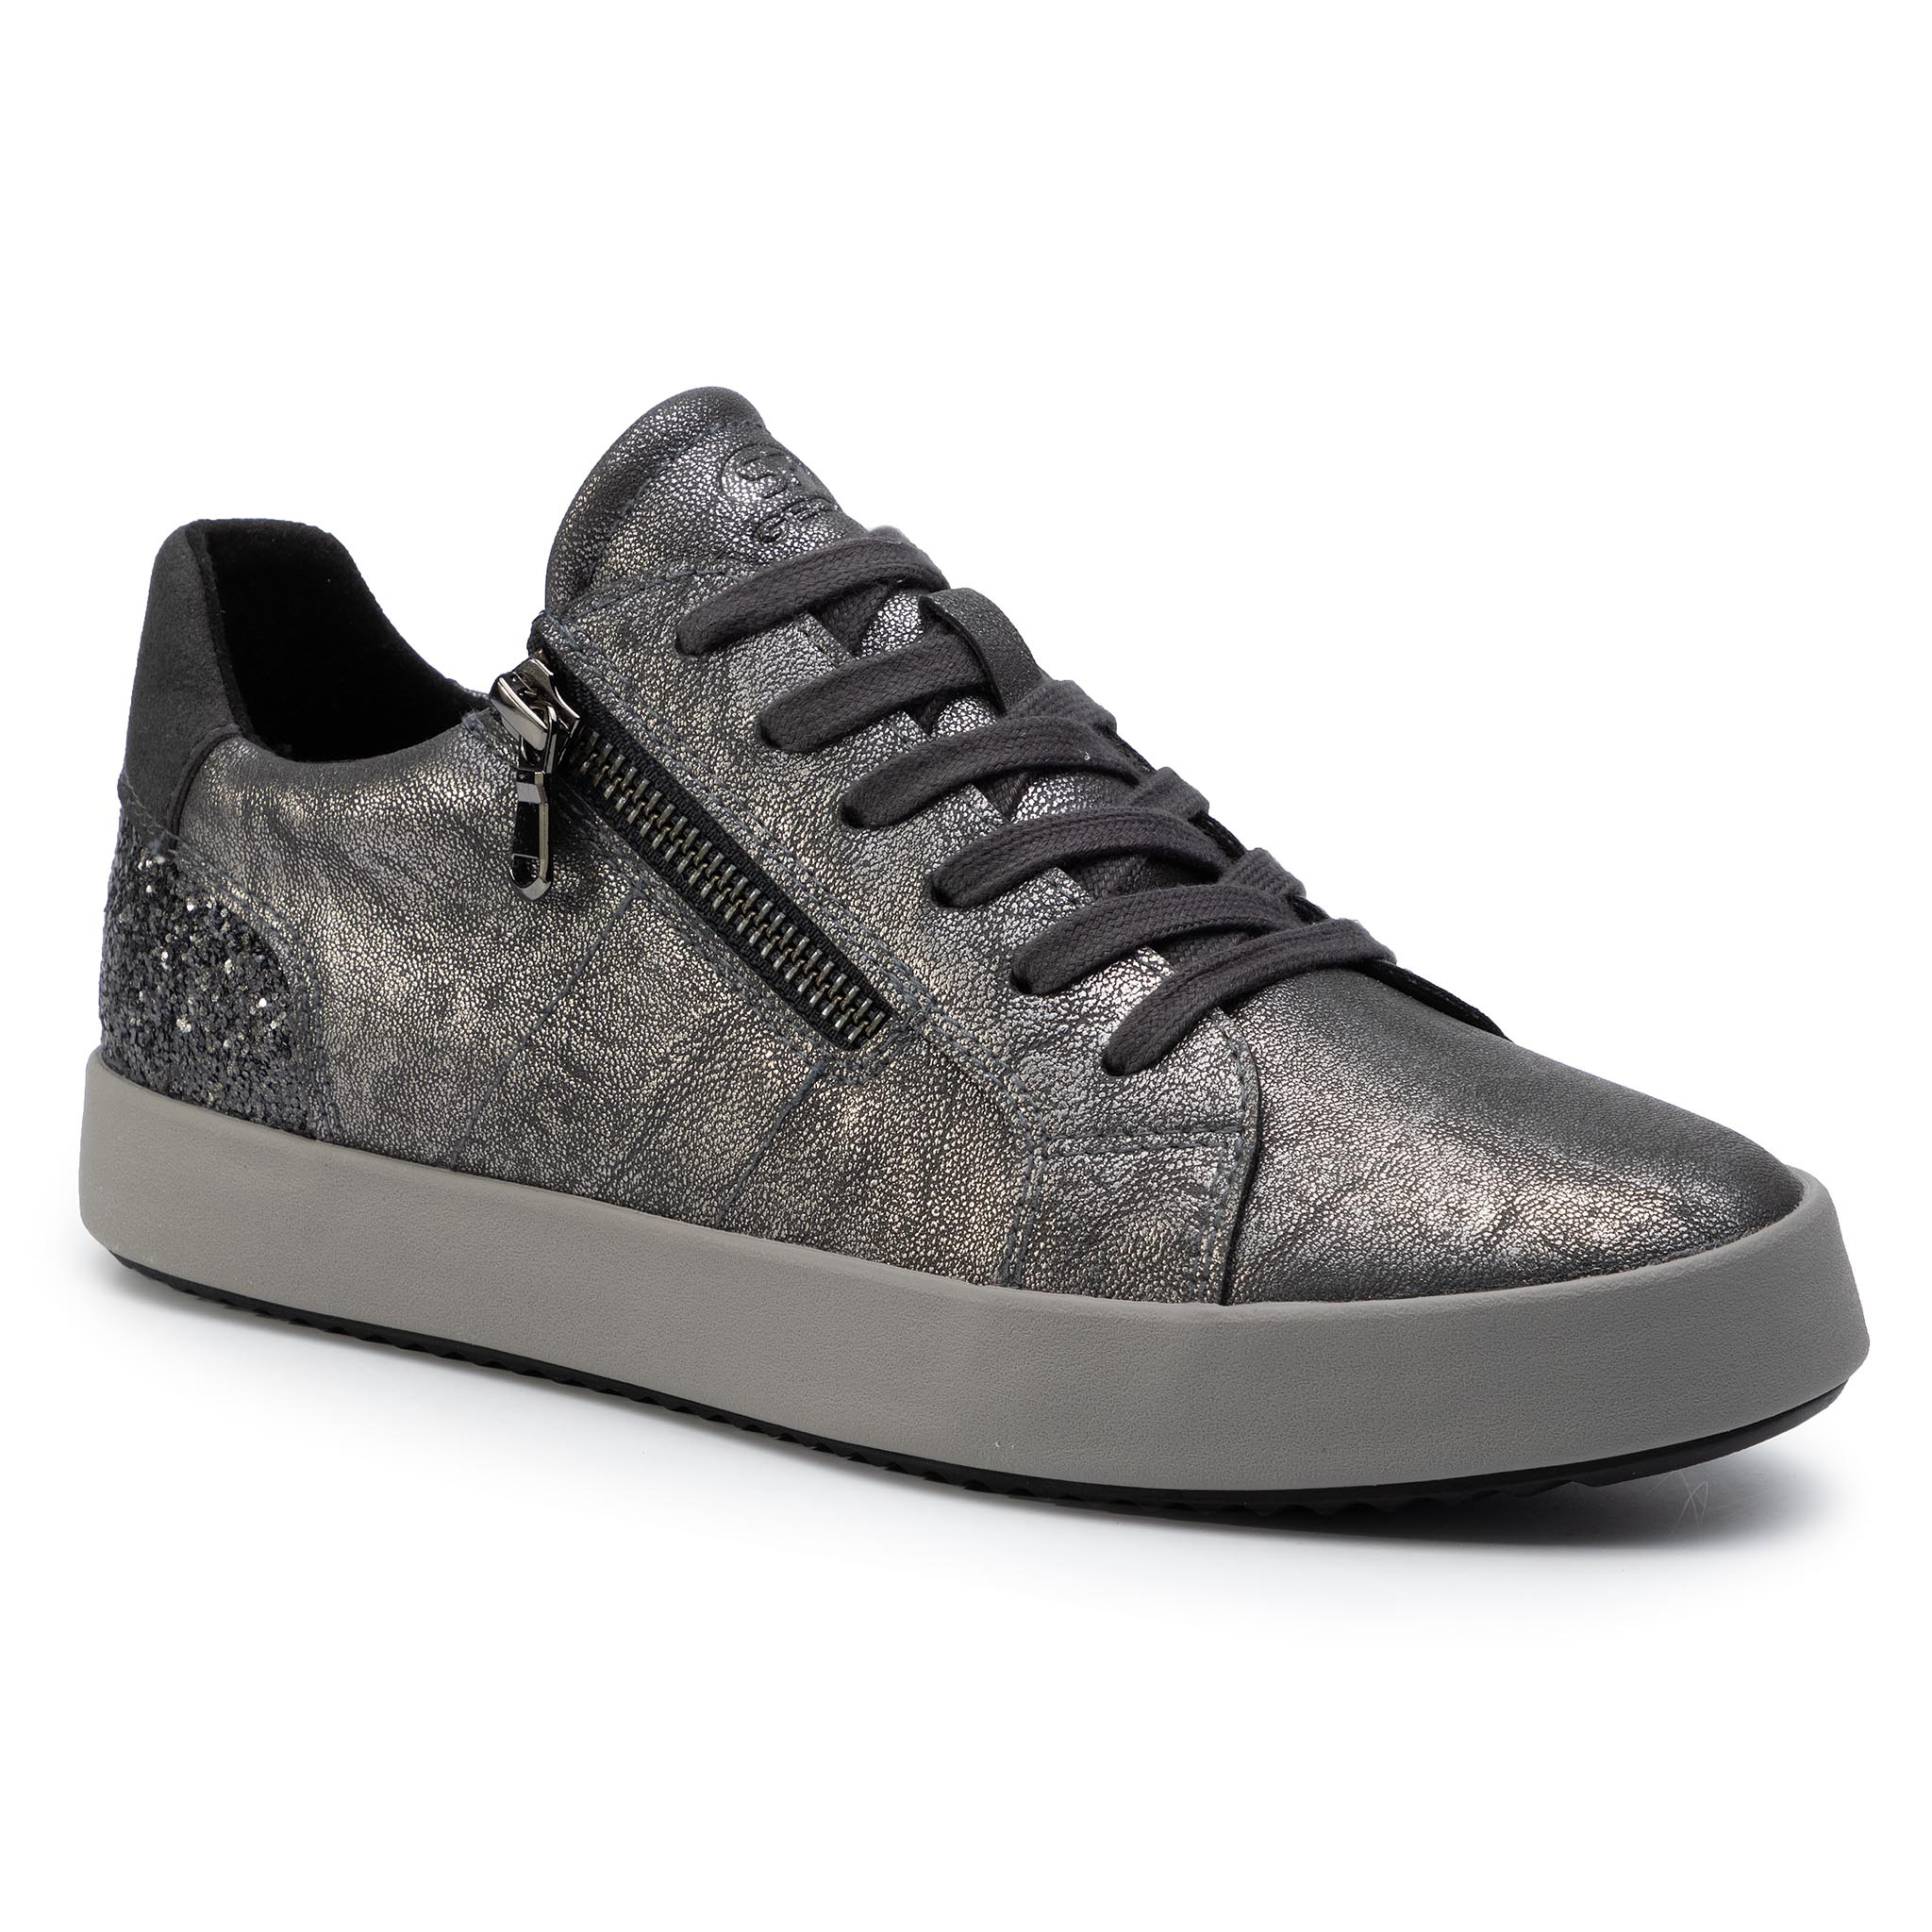 Sneakers GEOX - D Blomiee A D946HA 0PVEW C9004 Anthracite